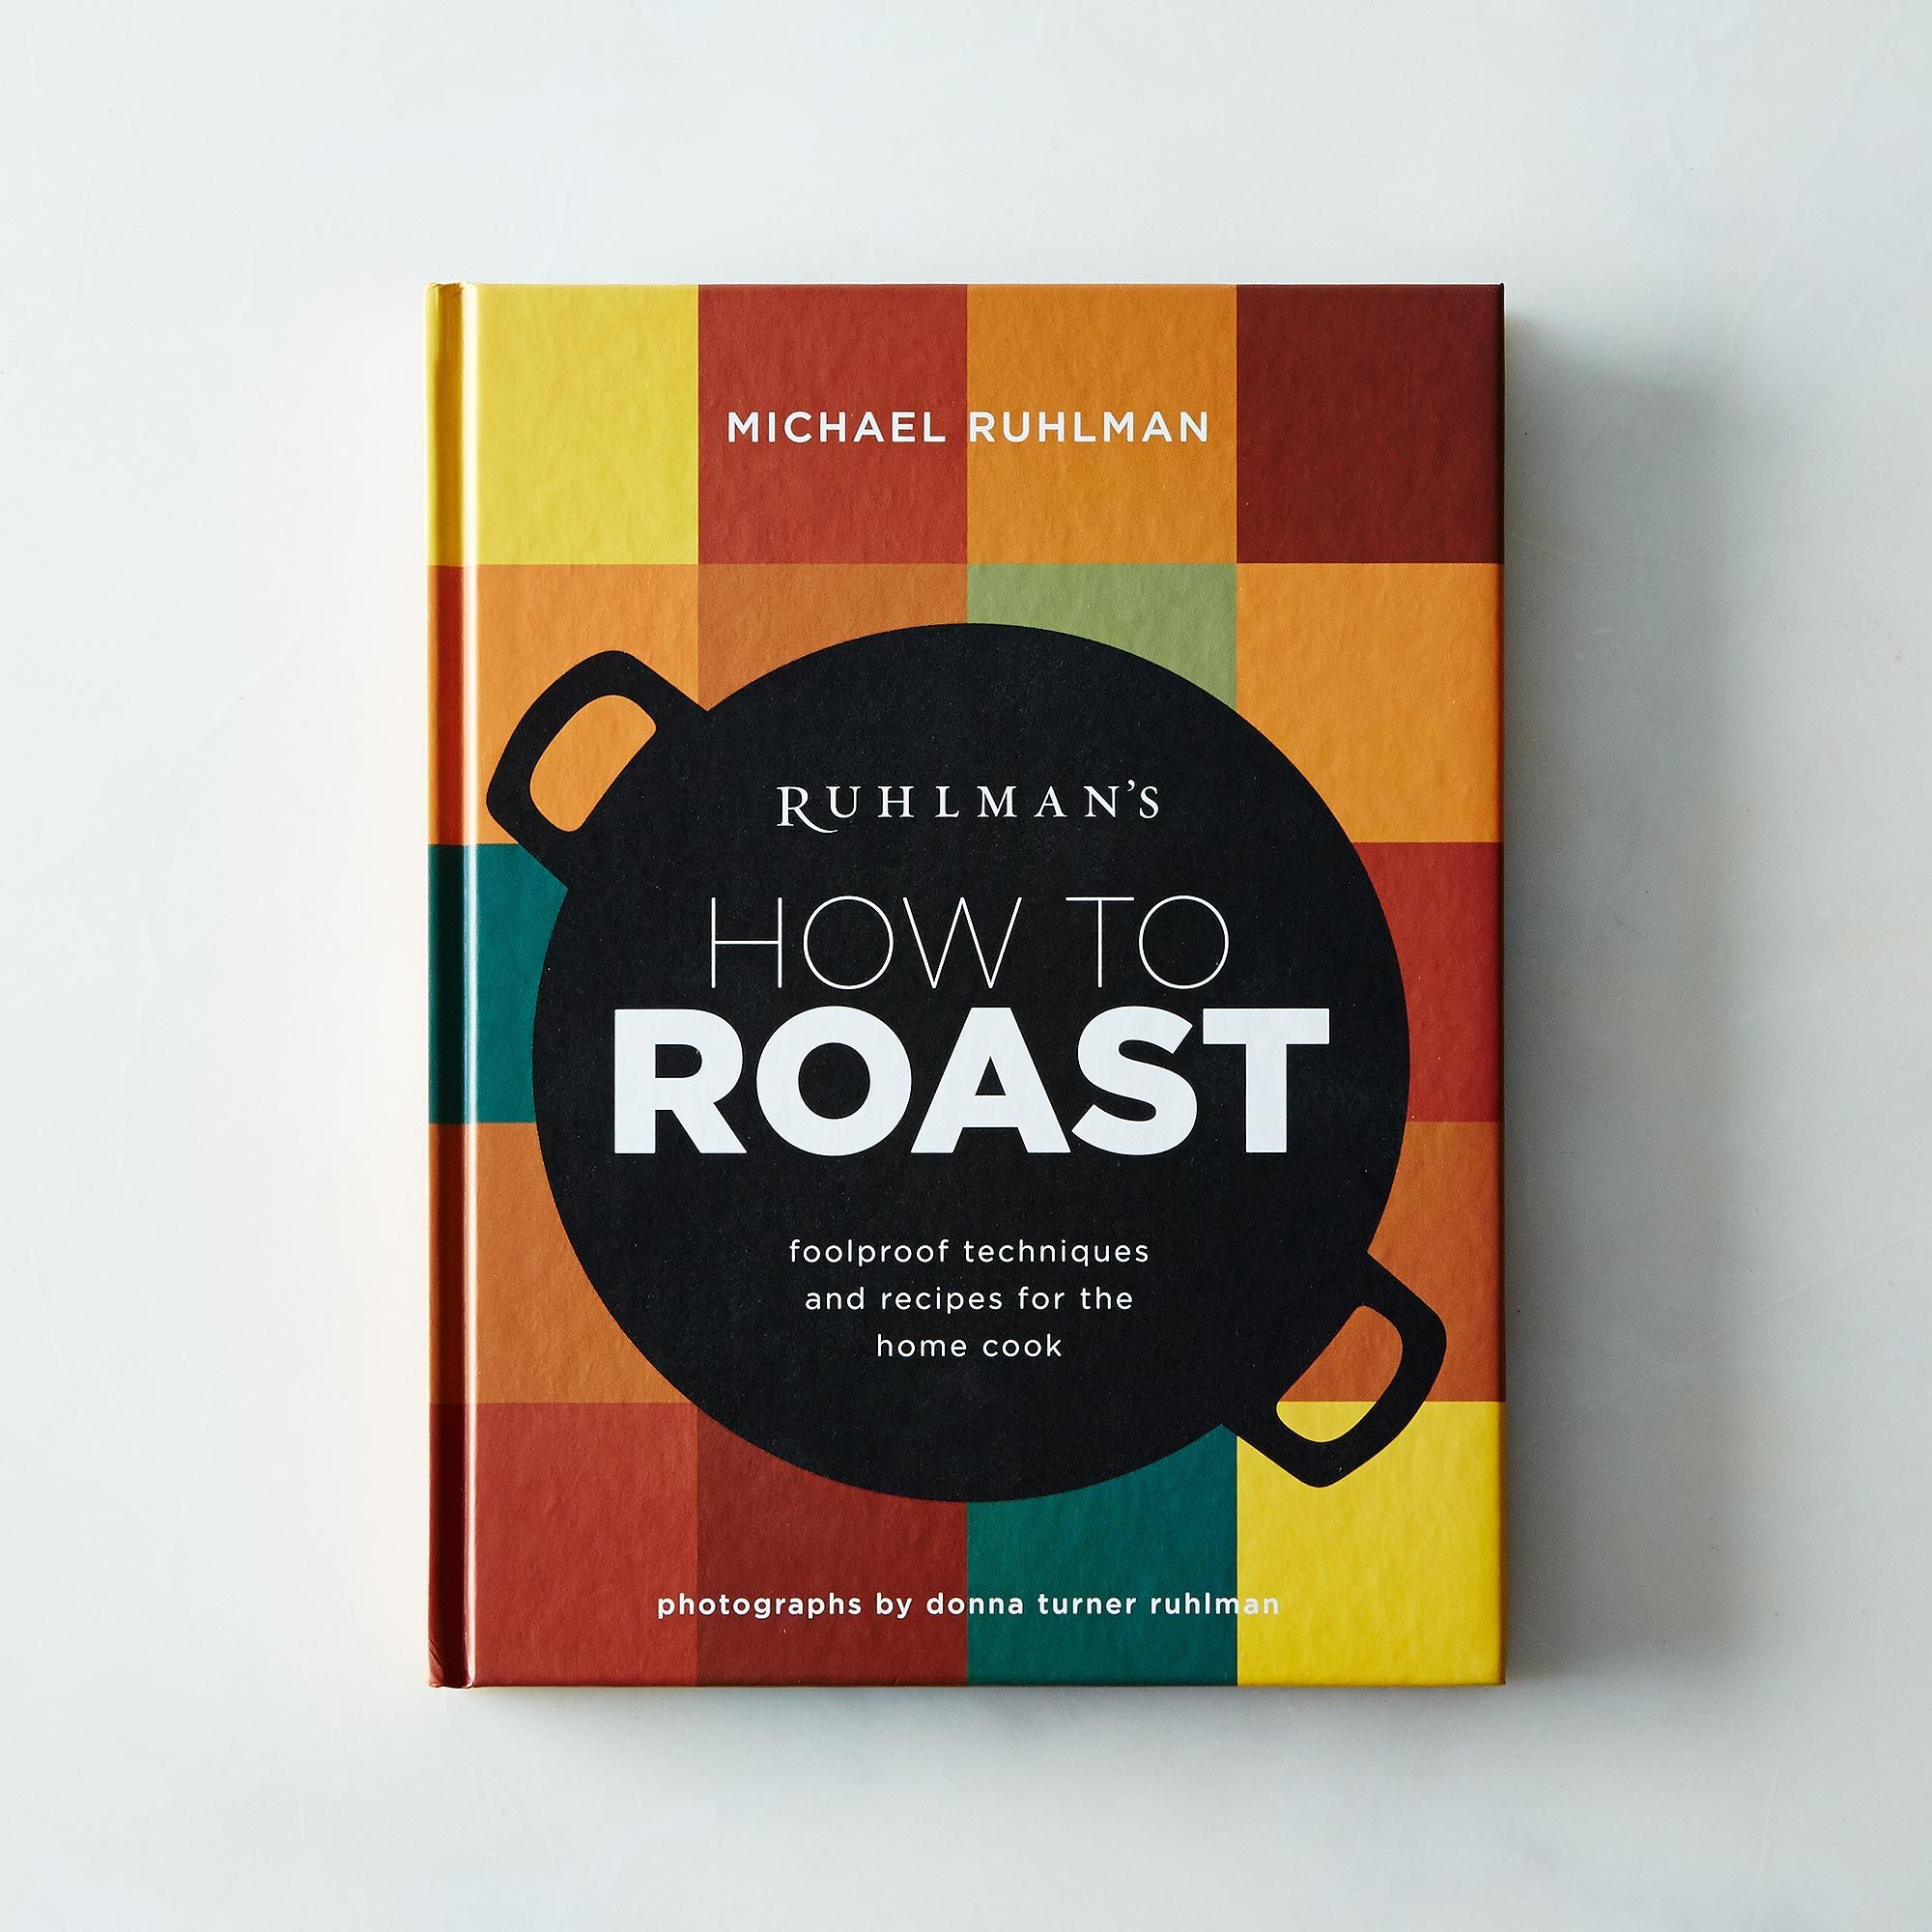 A153713a-bf0e-43fa-afe1-b43f0de664fa--2014-1024_hachette_how-to-roast-001